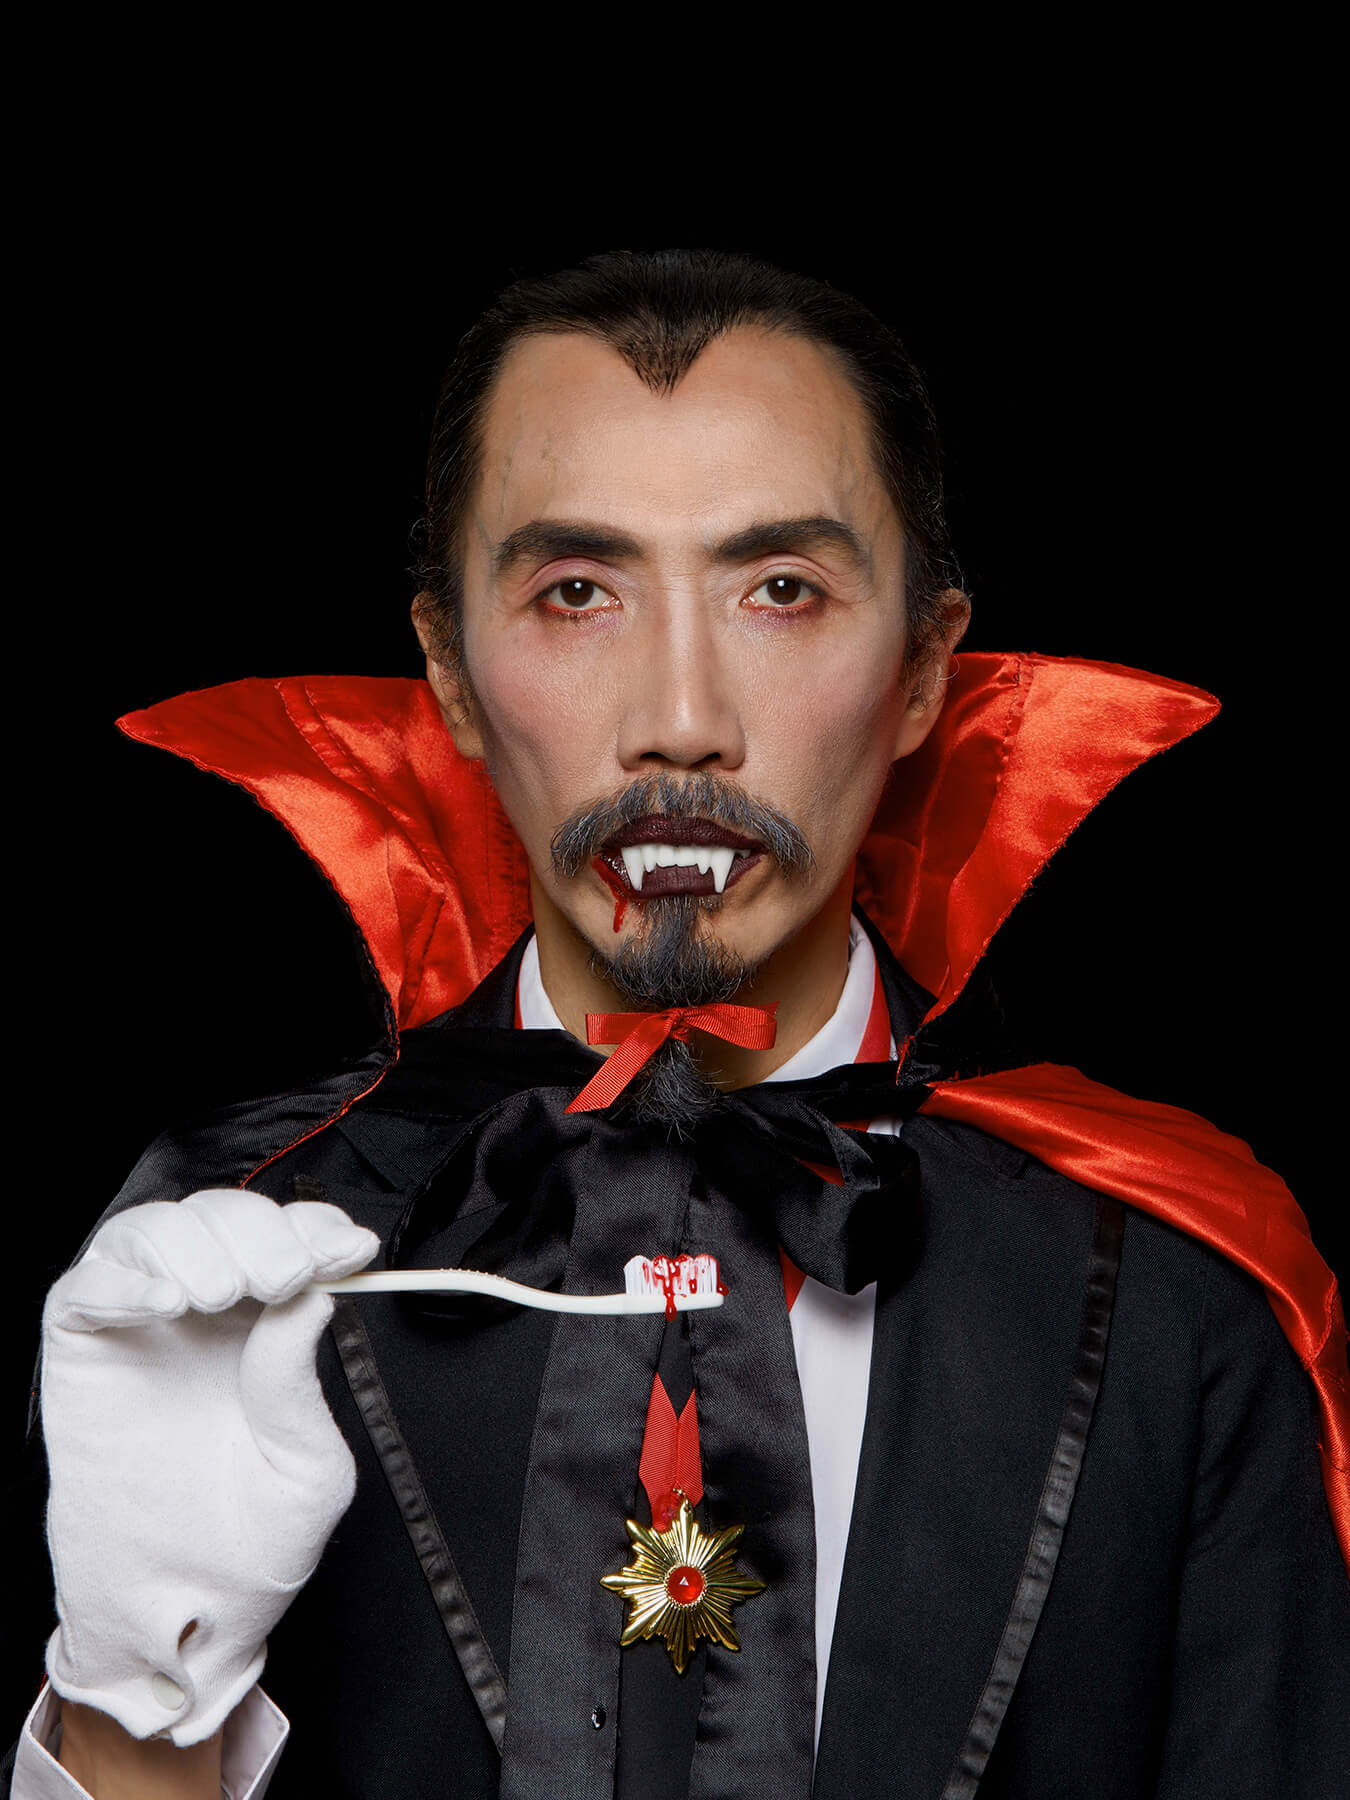 2 NOV 2017 Derong is dressed as Dracula